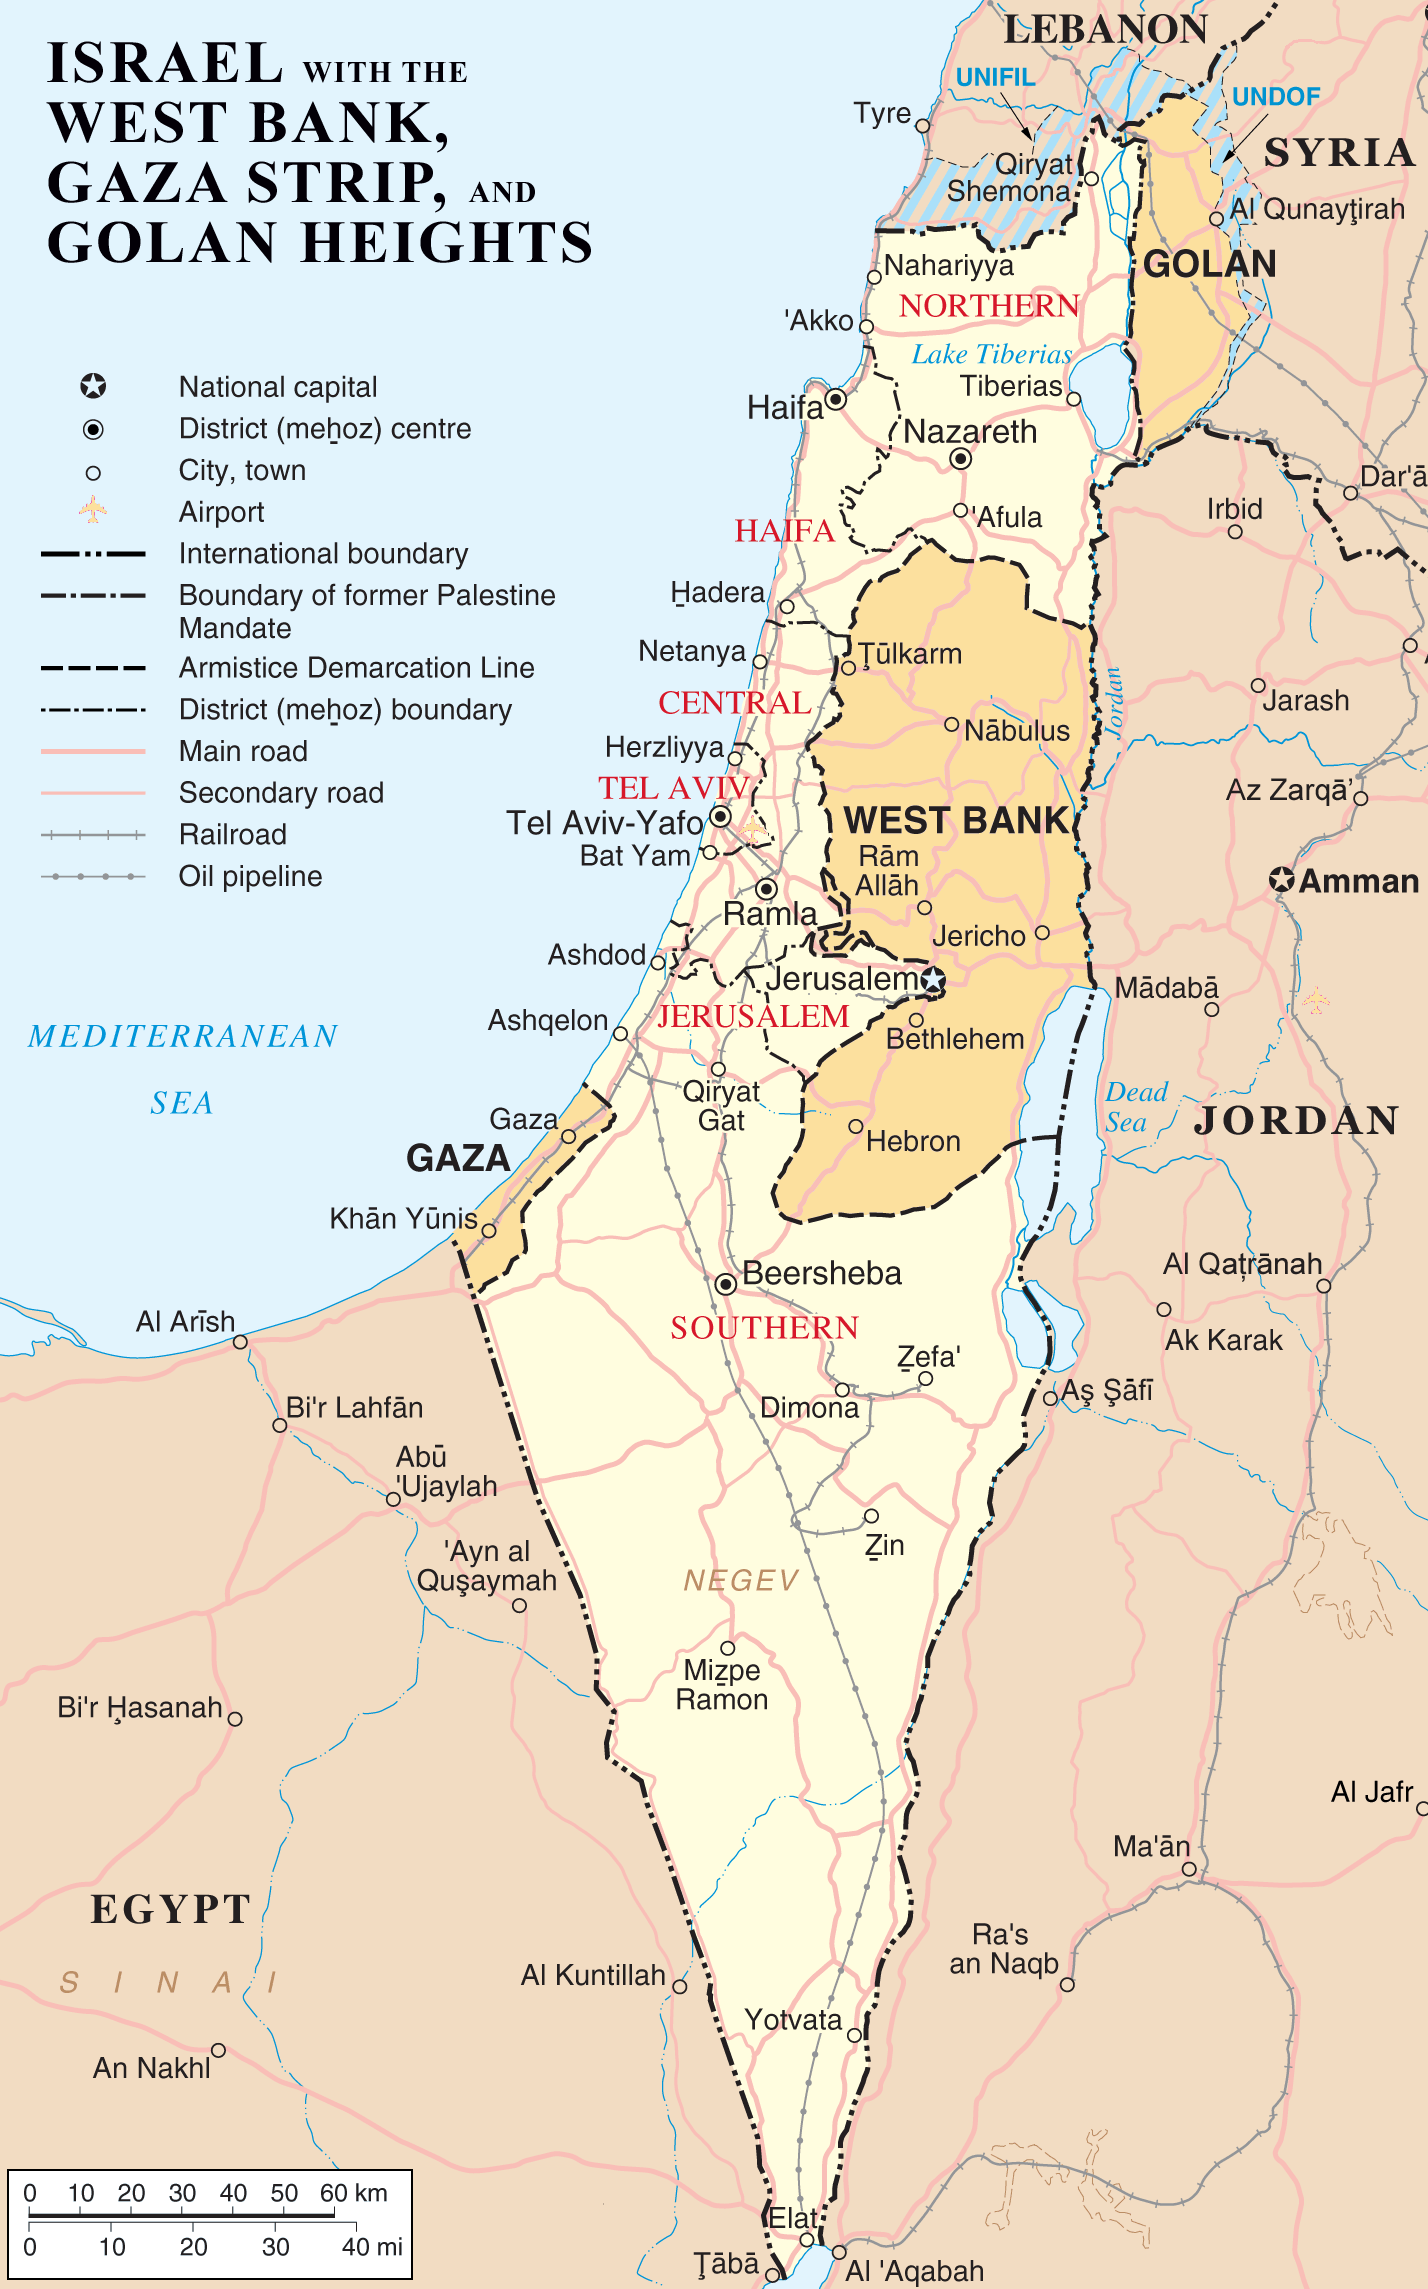 Map of Israel with the West Bank, Gaza Strip, and Golan Heights